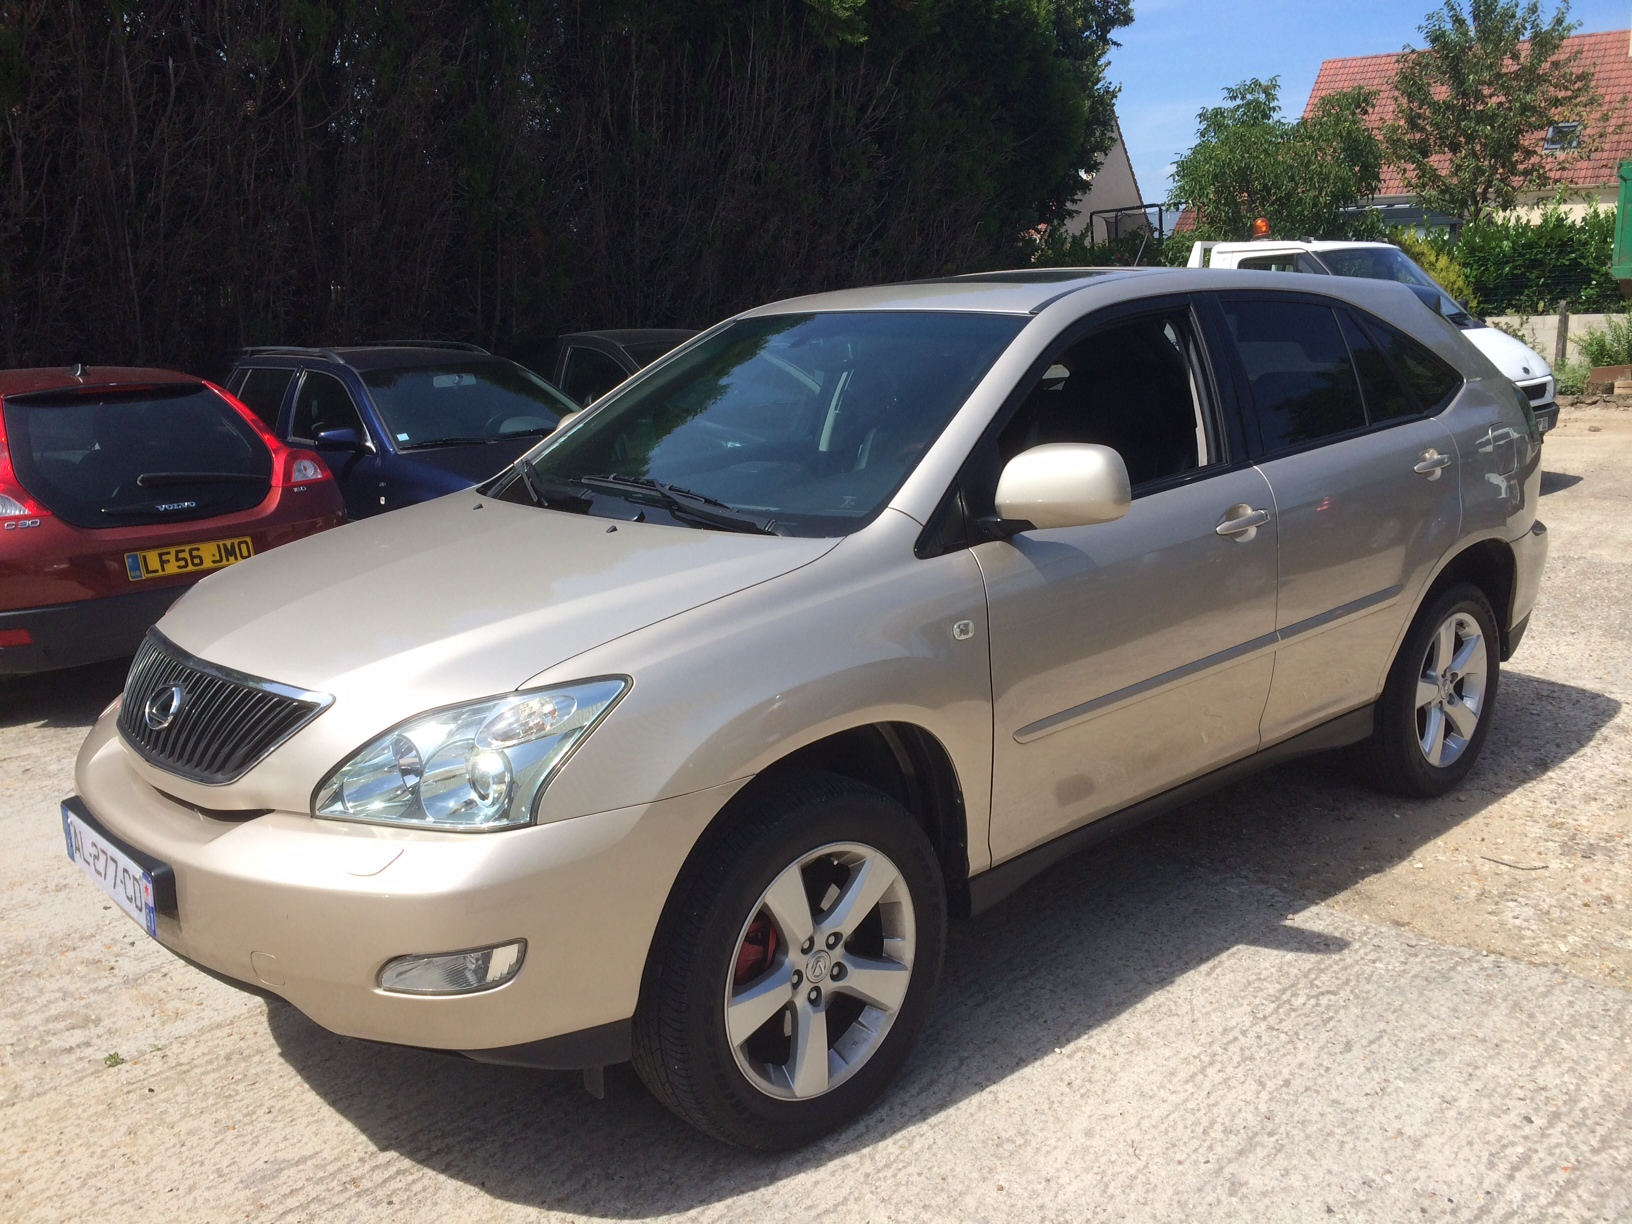 LEXUS RX 300 PRESIDENT FRENCH REGISTERED